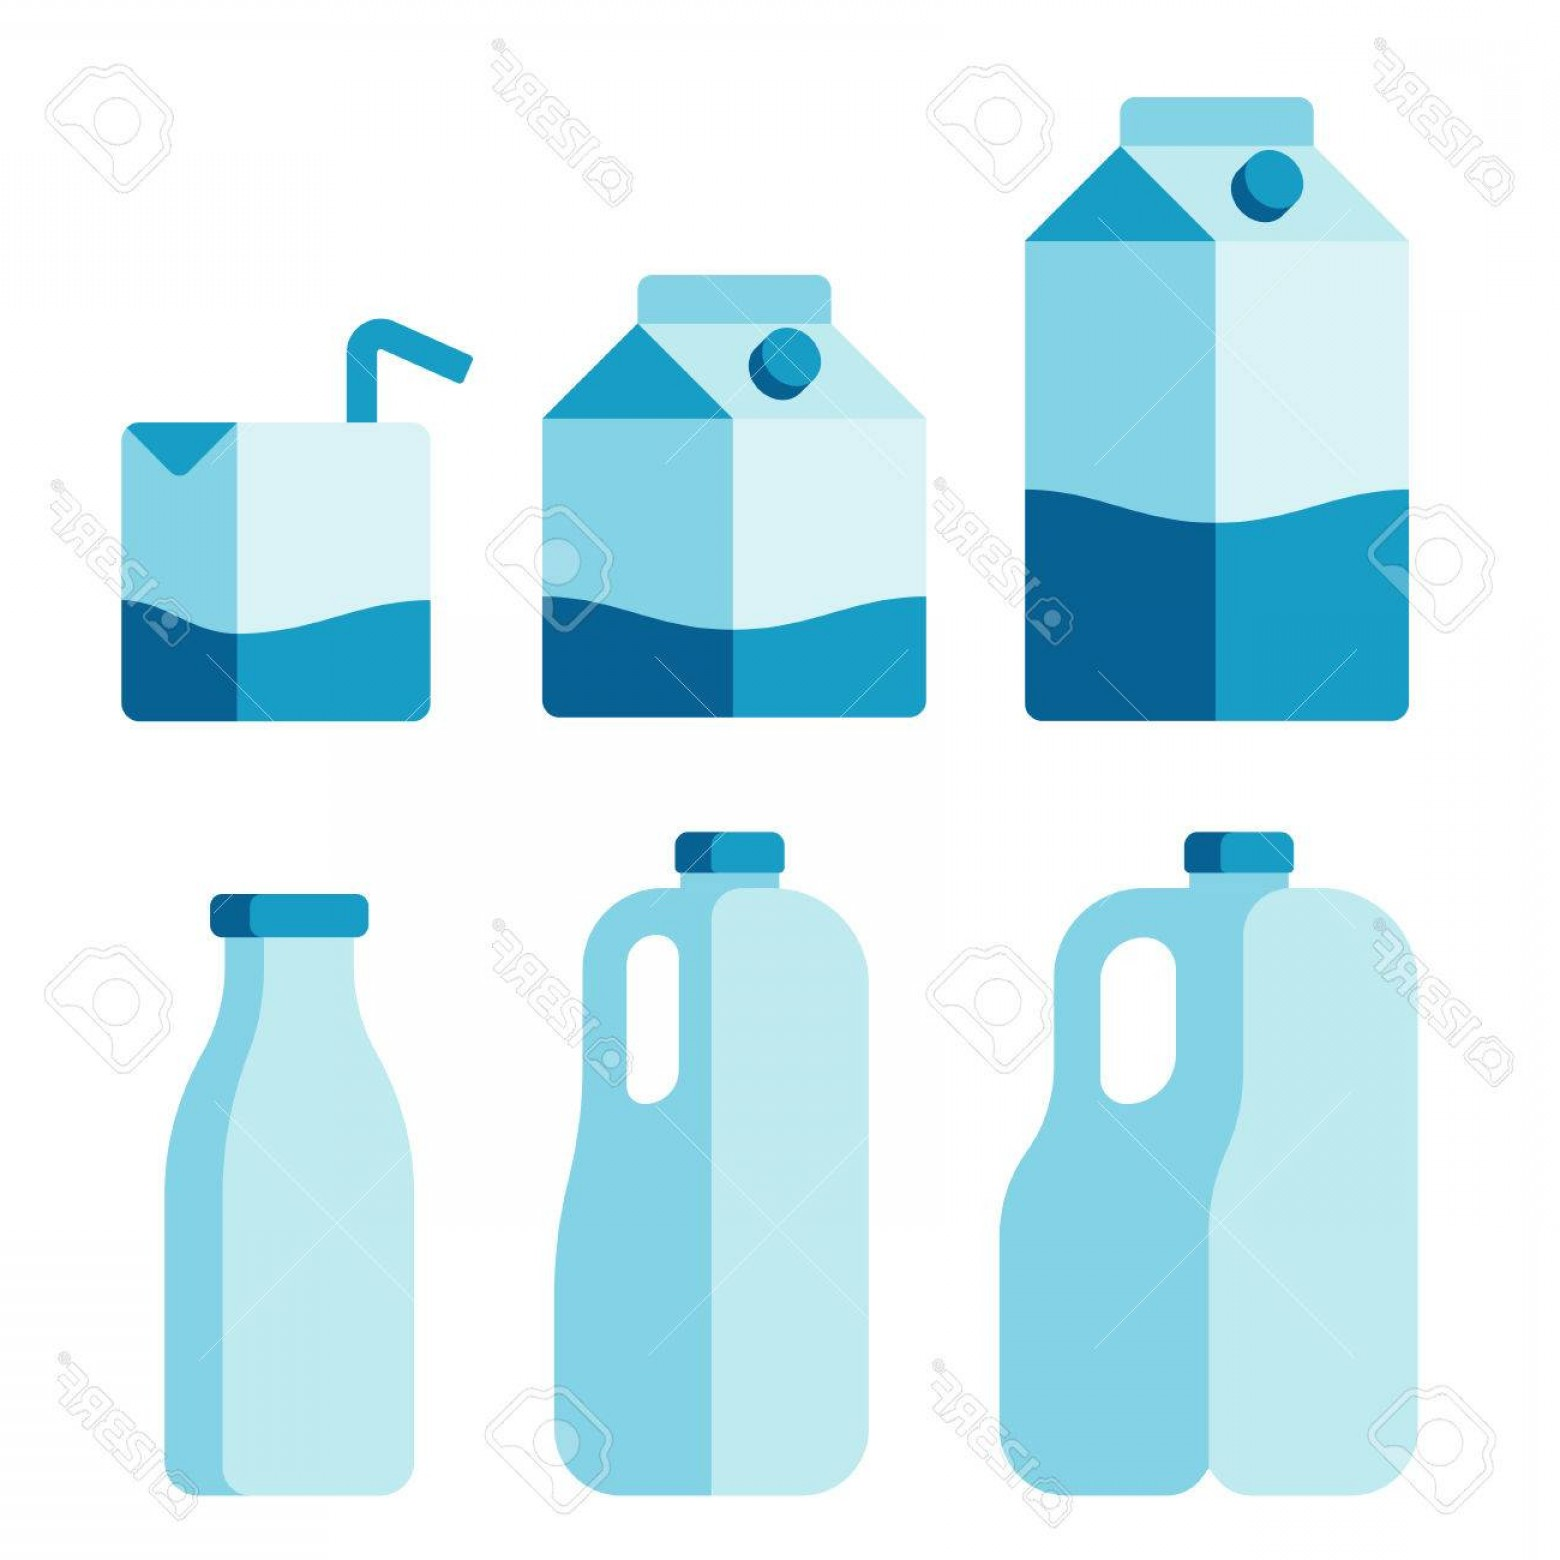 Gallon Milk Jug Vector: Photostock Vector Set Of Milk Container Icons Cartons Plastic Jugs And Glass Bottle Isolated Flat Vector Illustration